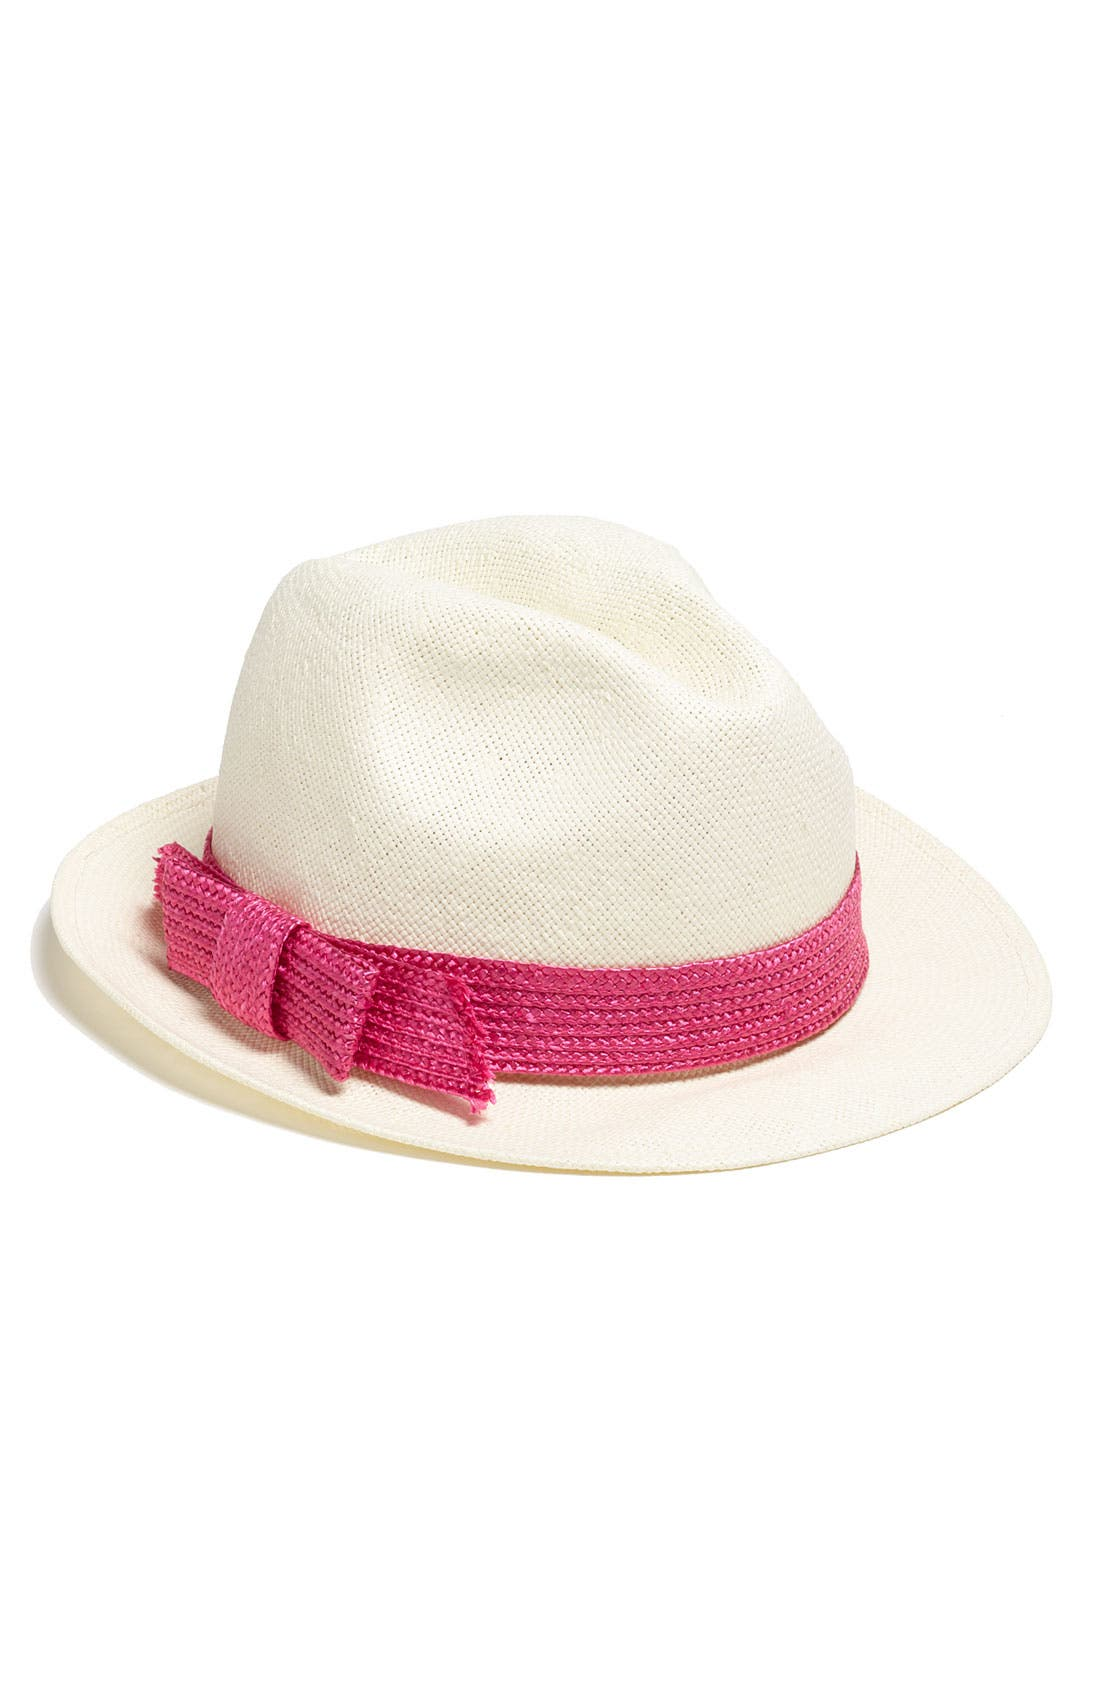 Main Image - kate spade new york straw fedora